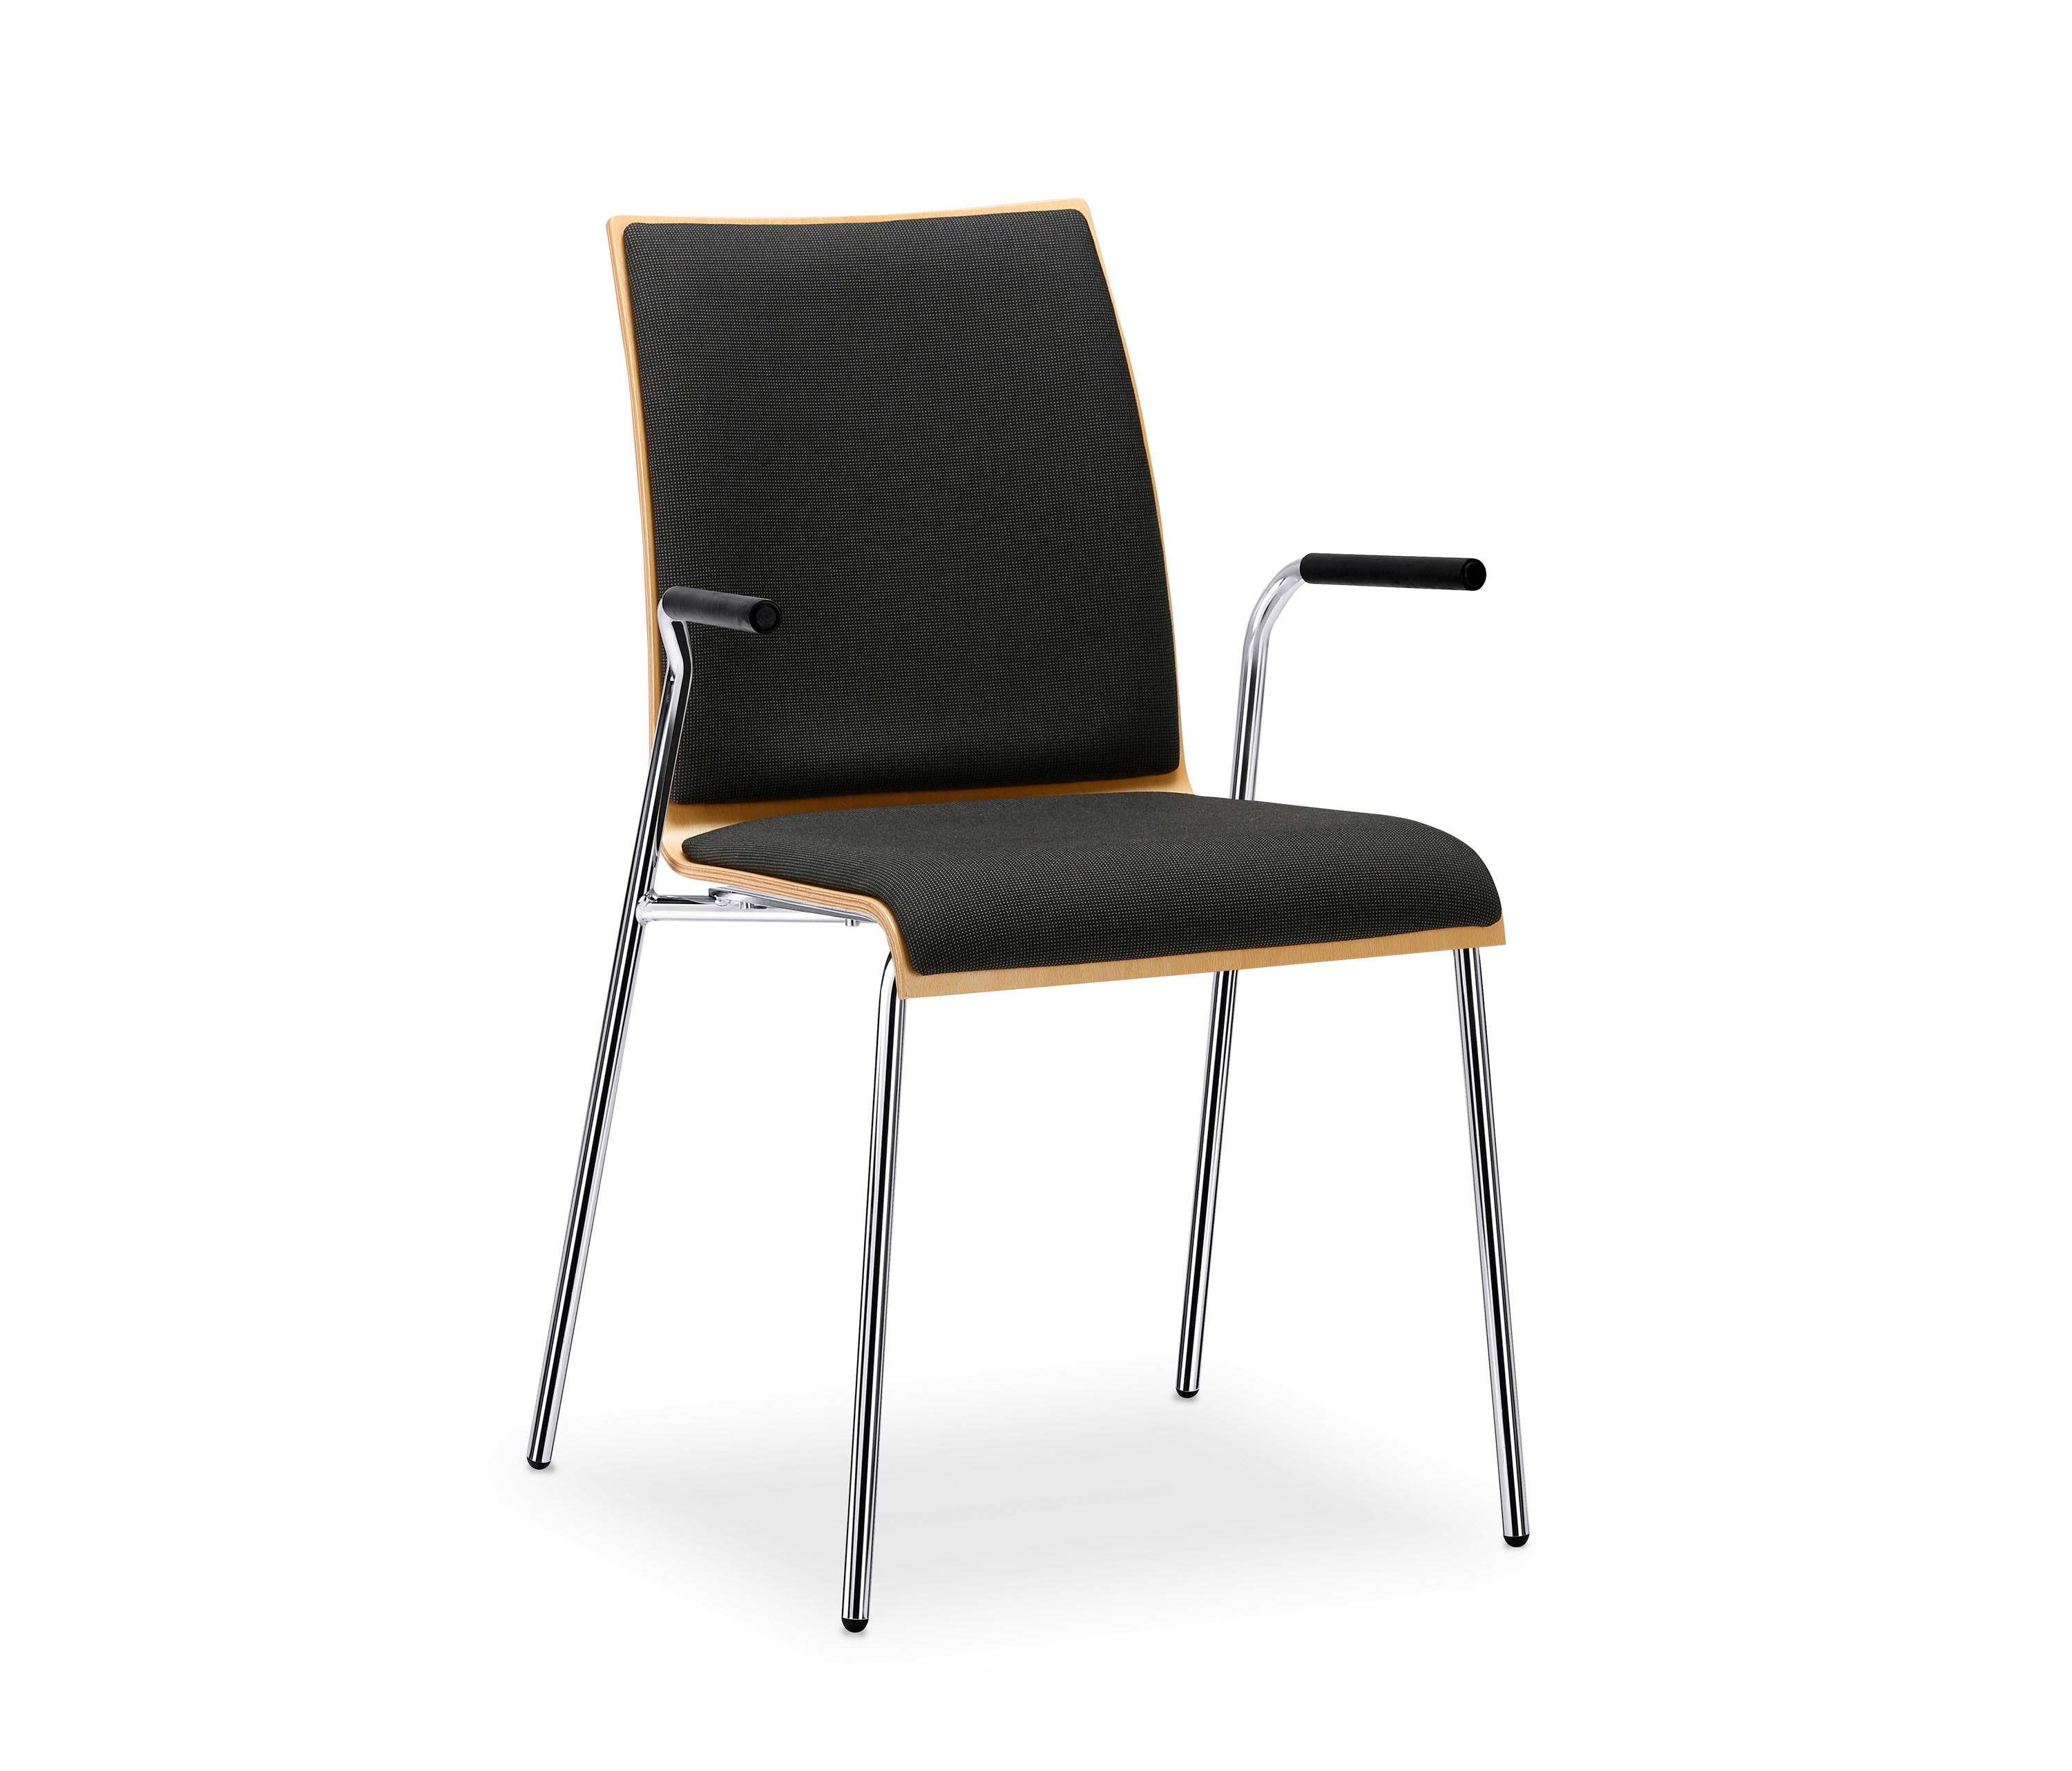 curveis1 c22v visitors chairs side chairs from. Black Bedroom Furniture Sets. Home Design Ideas